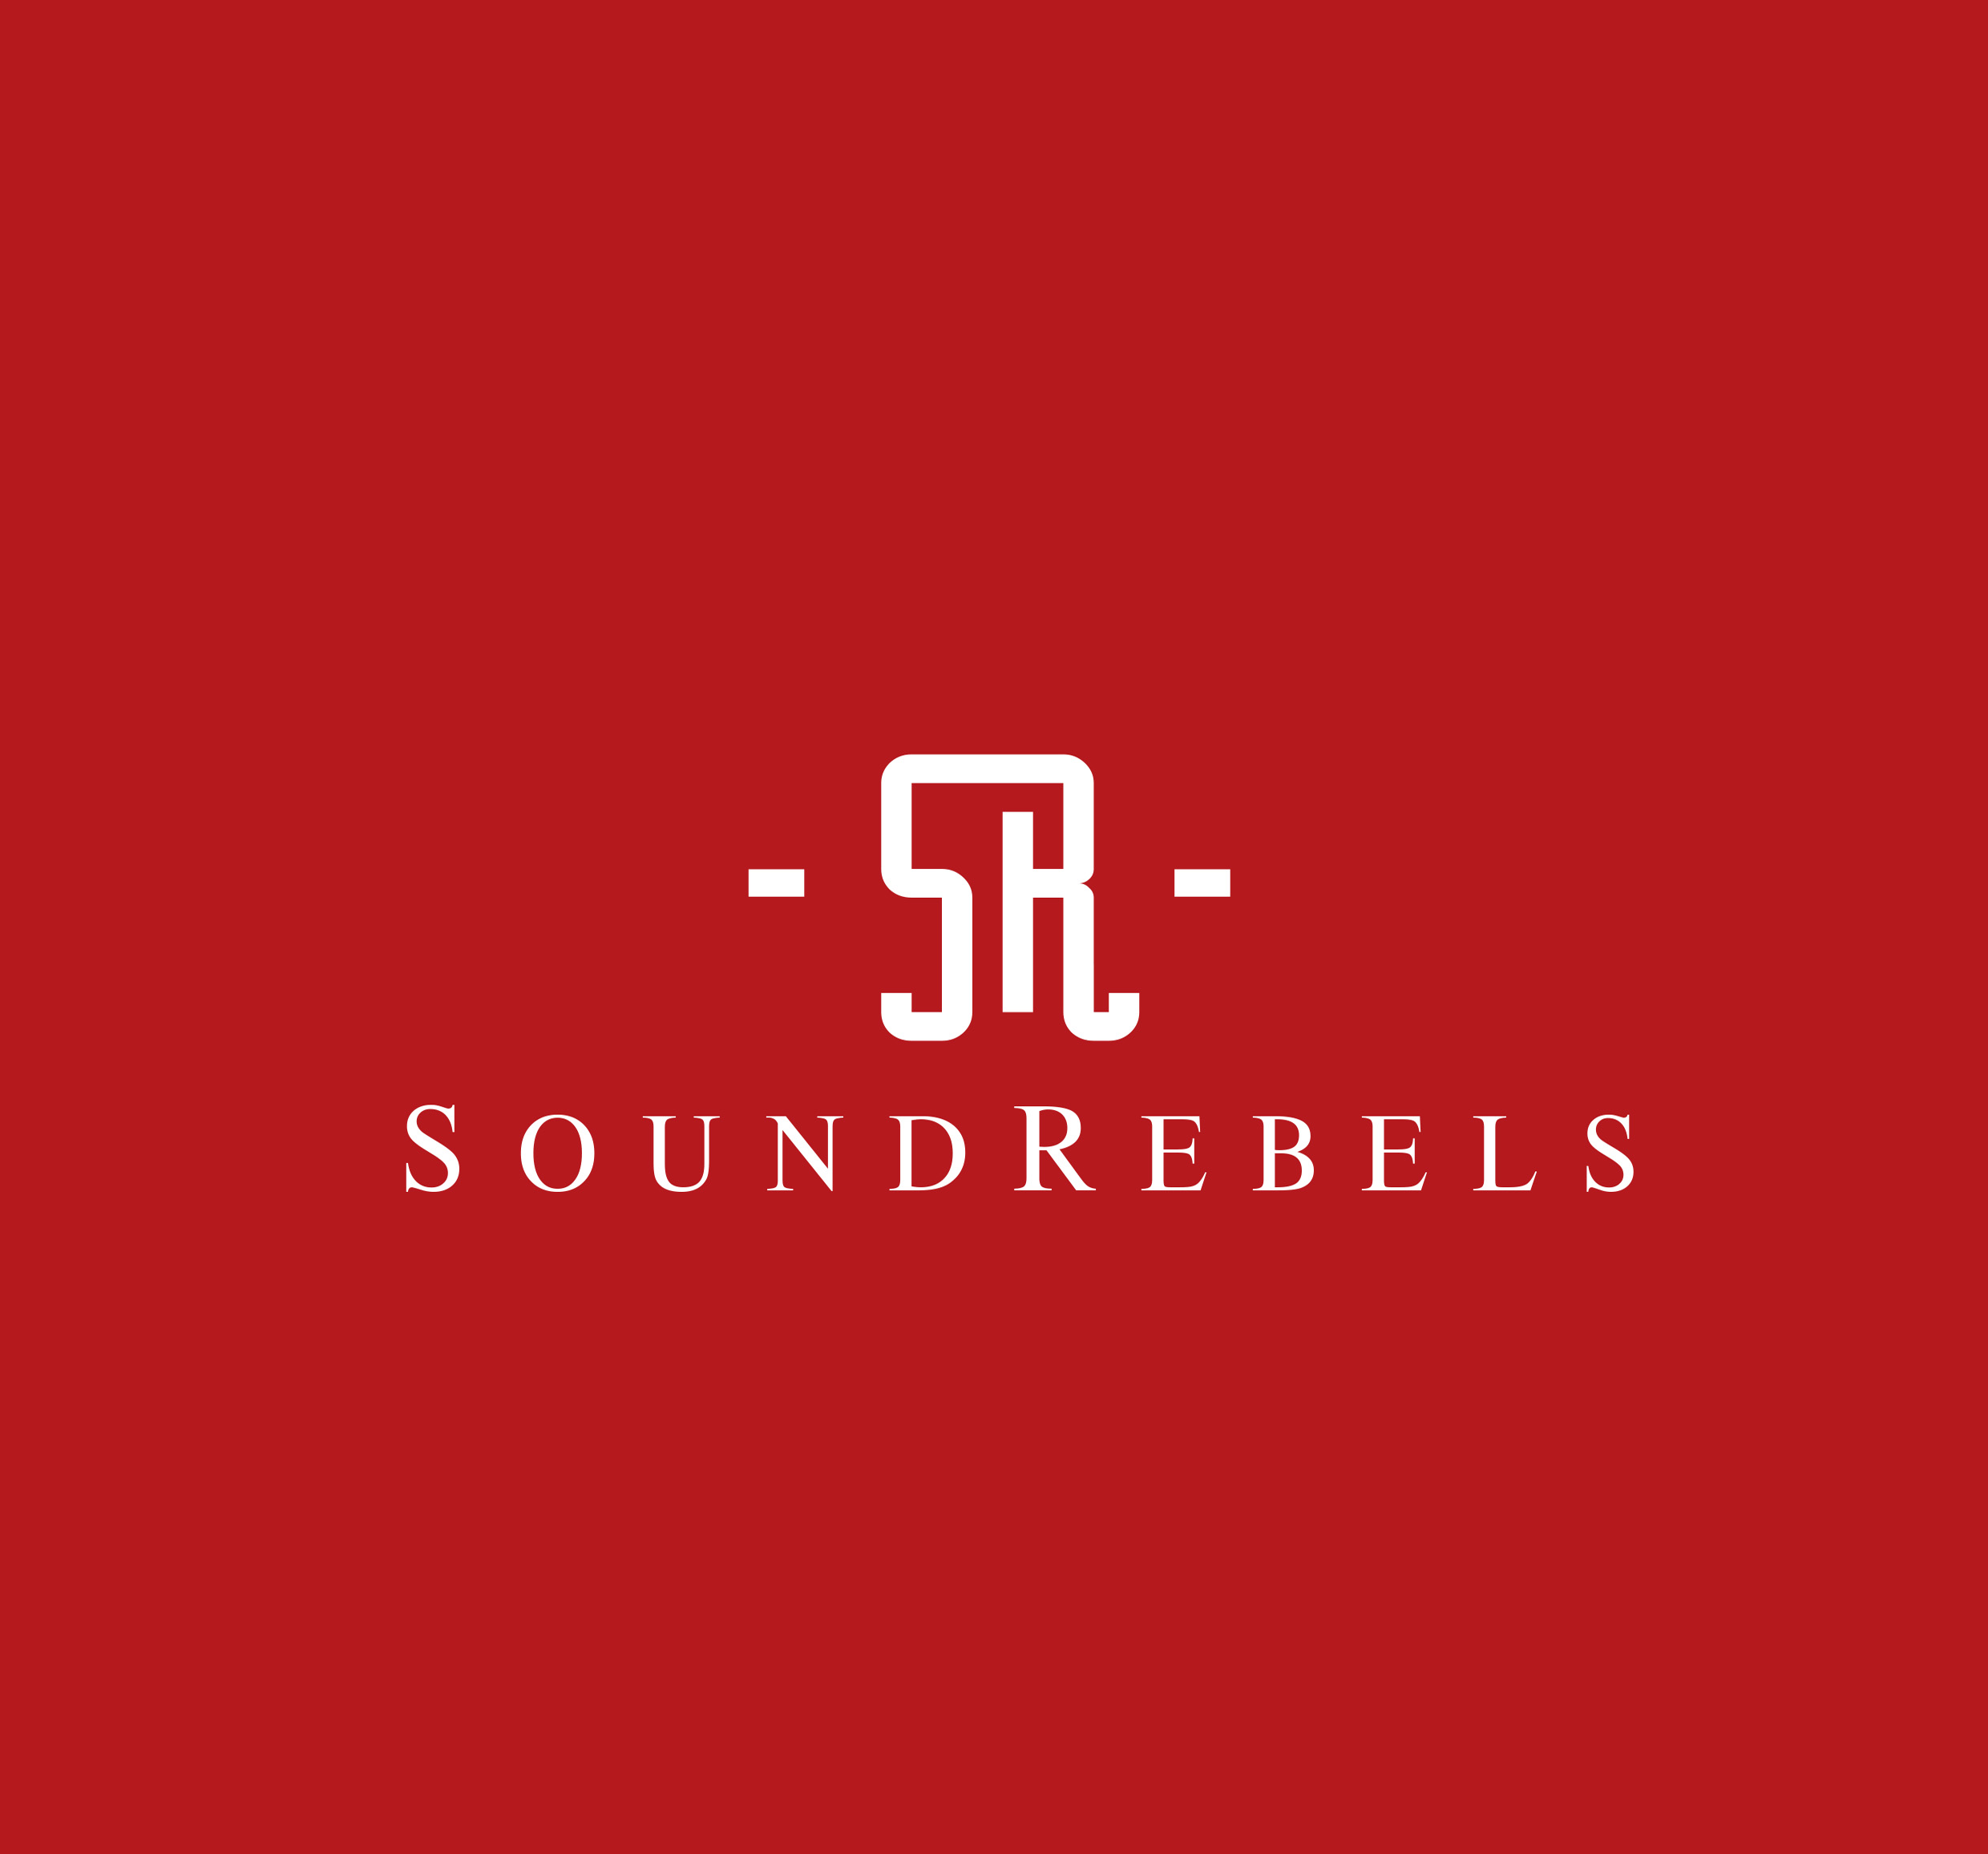 SoundRebels JPG 3